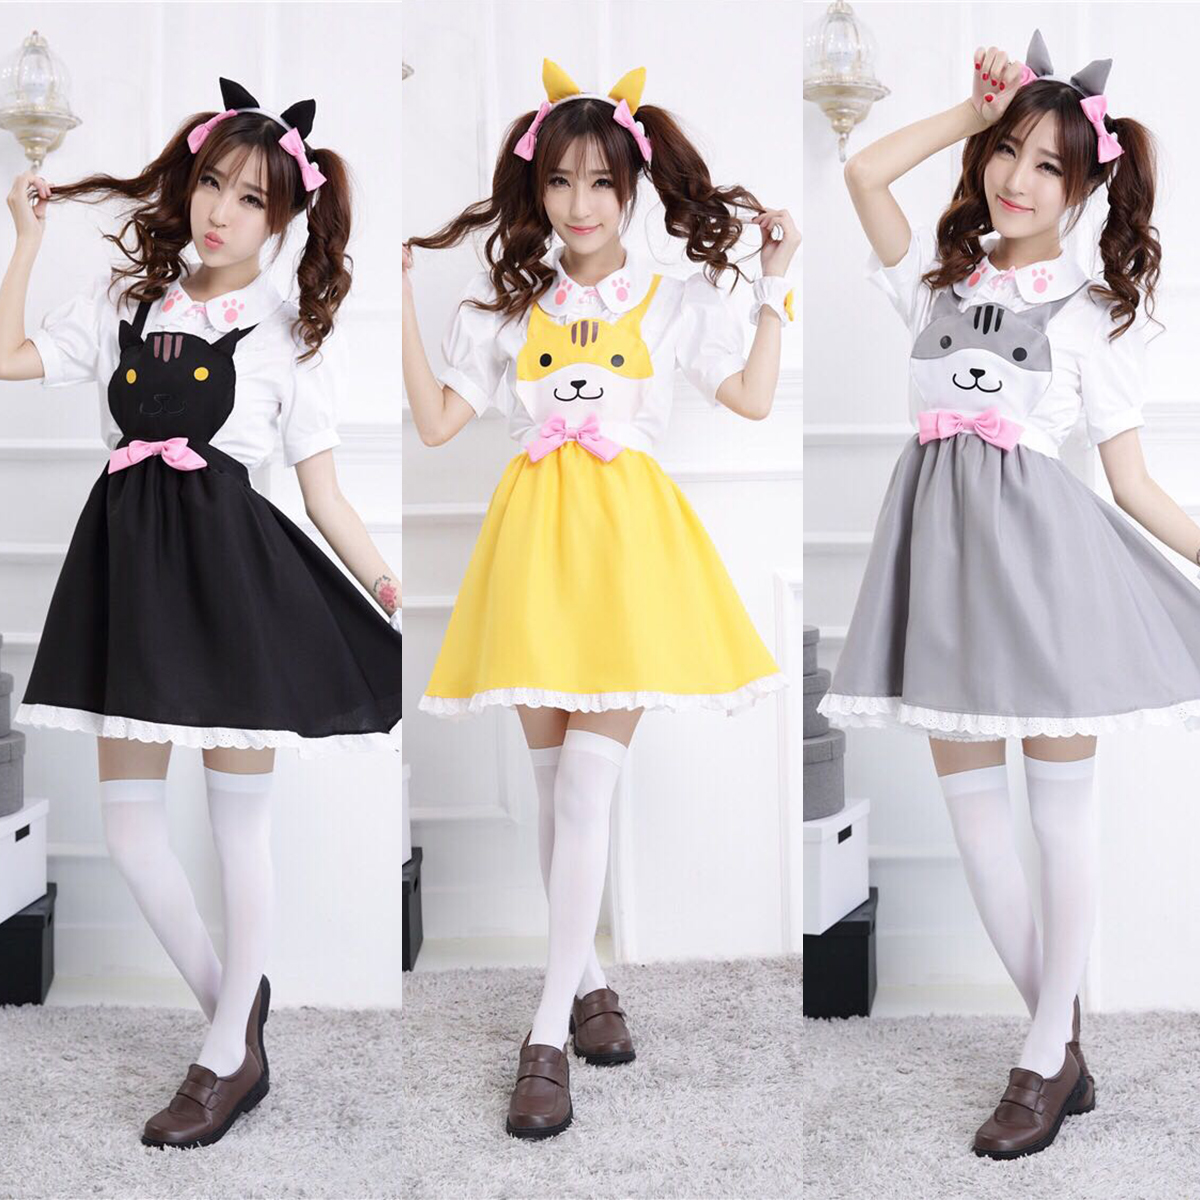 f6a404d3934 Lolita Cat Overalls Dress Cute Anime Cosplay Jumper DC90 · The ...